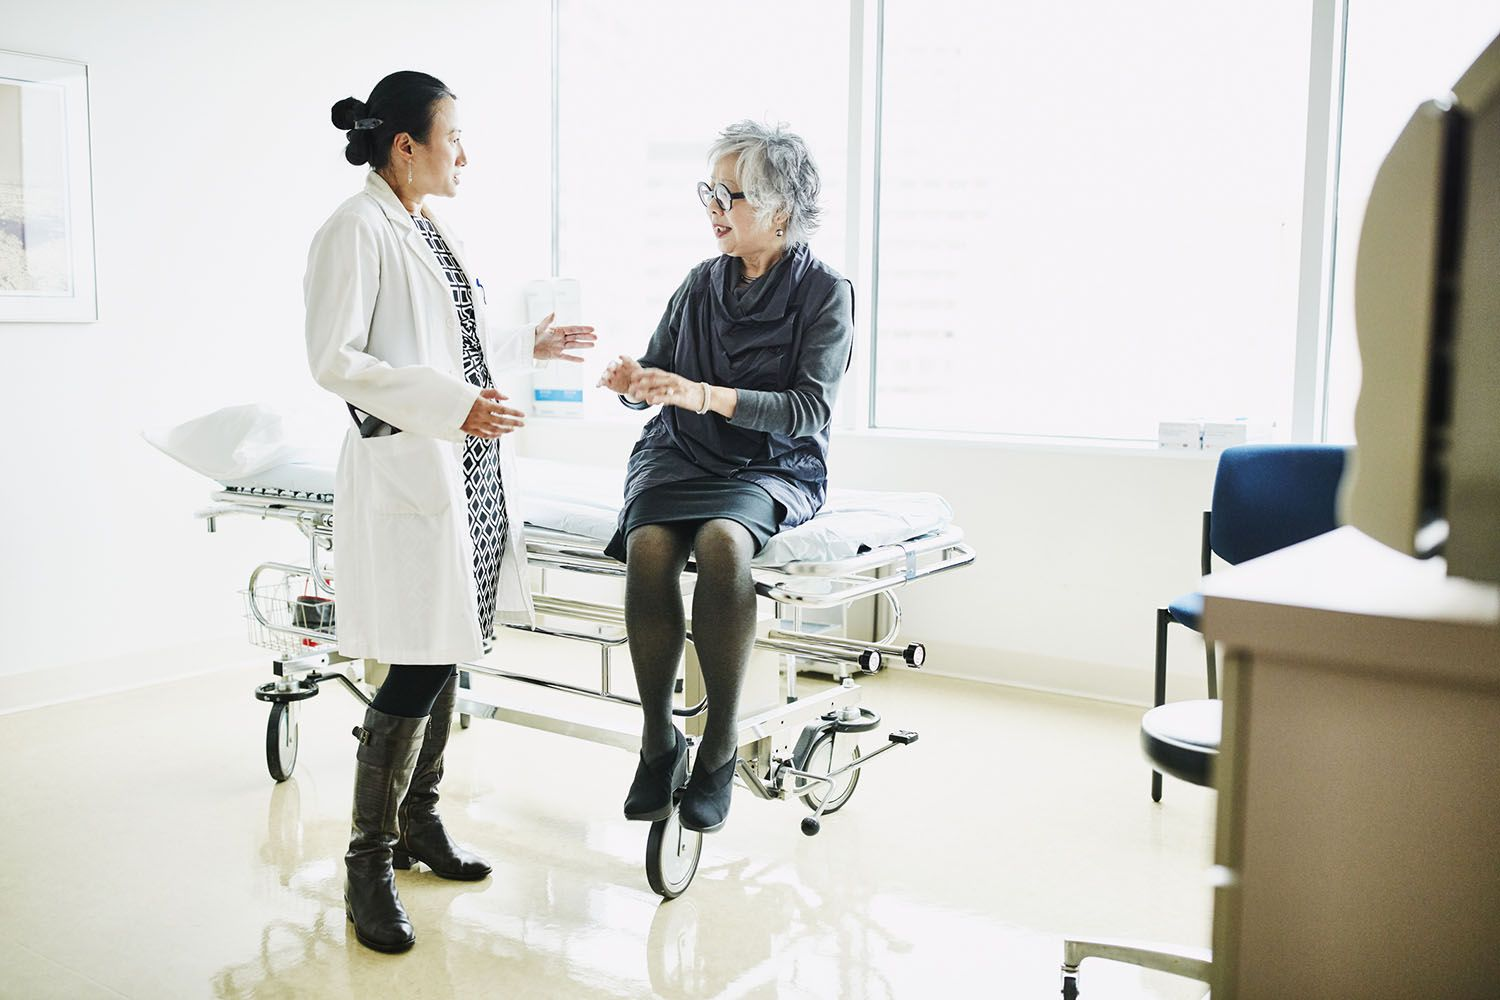 Senior female patient in discussion with doctor during check up in exam room